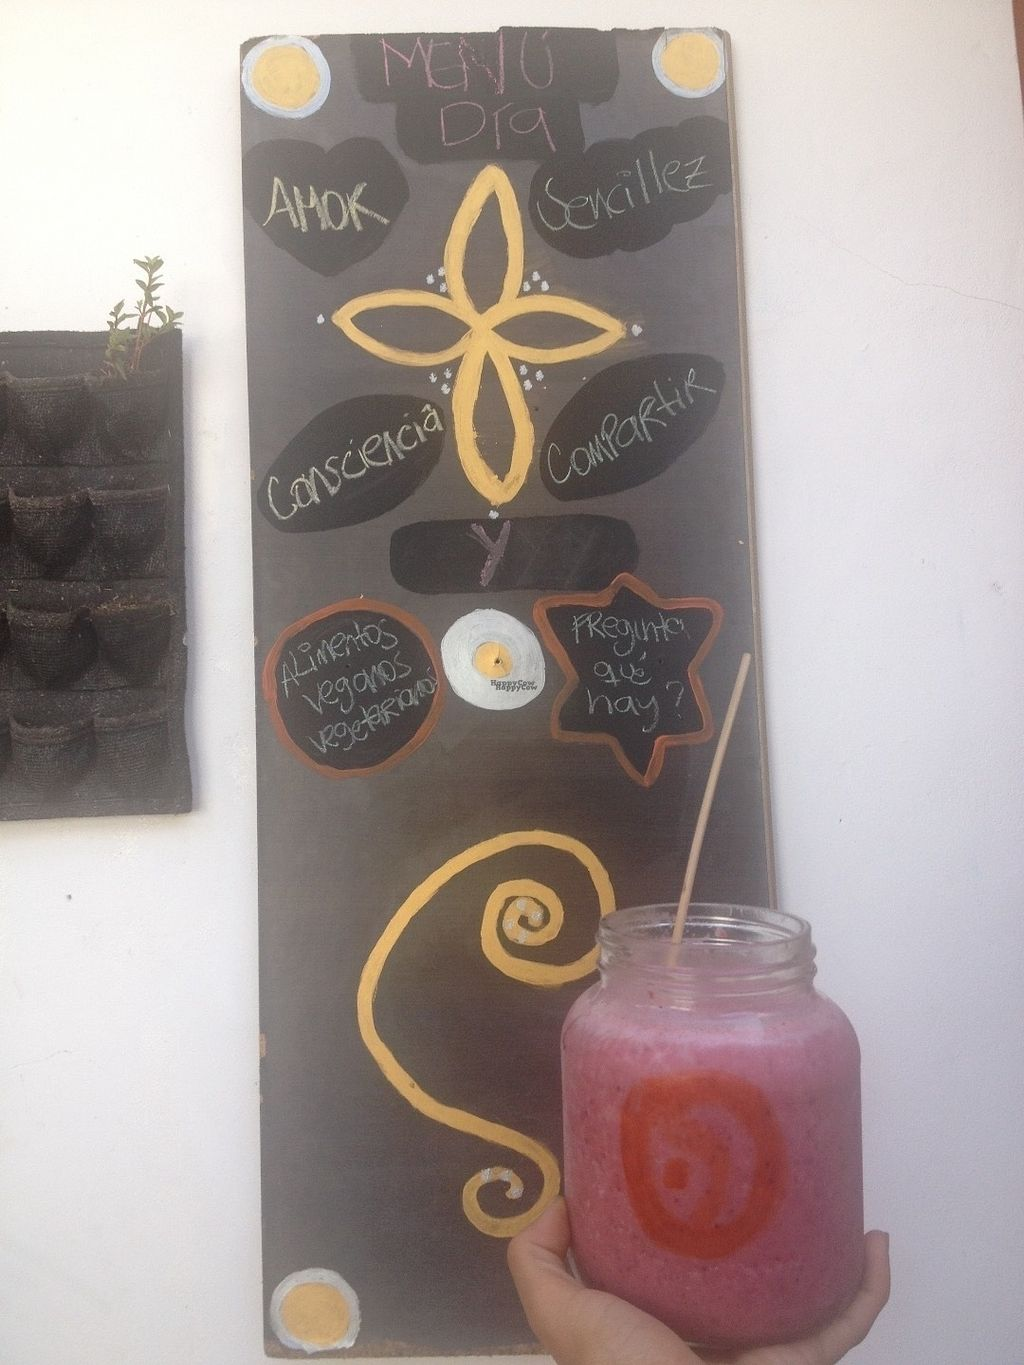 """Photo of CLOSED: Cuerpo Y Mente  by <a href=""""/members/profile/TIENDACUERPOMENTE"""">TIENDACUERPOMENTE</a> <br/>SMOOTHIE AND CONSCIENCE FOOD  <br/> September 18, 2016  - <a href='/contact/abuse/image/75563/176601'>Report</a>"""